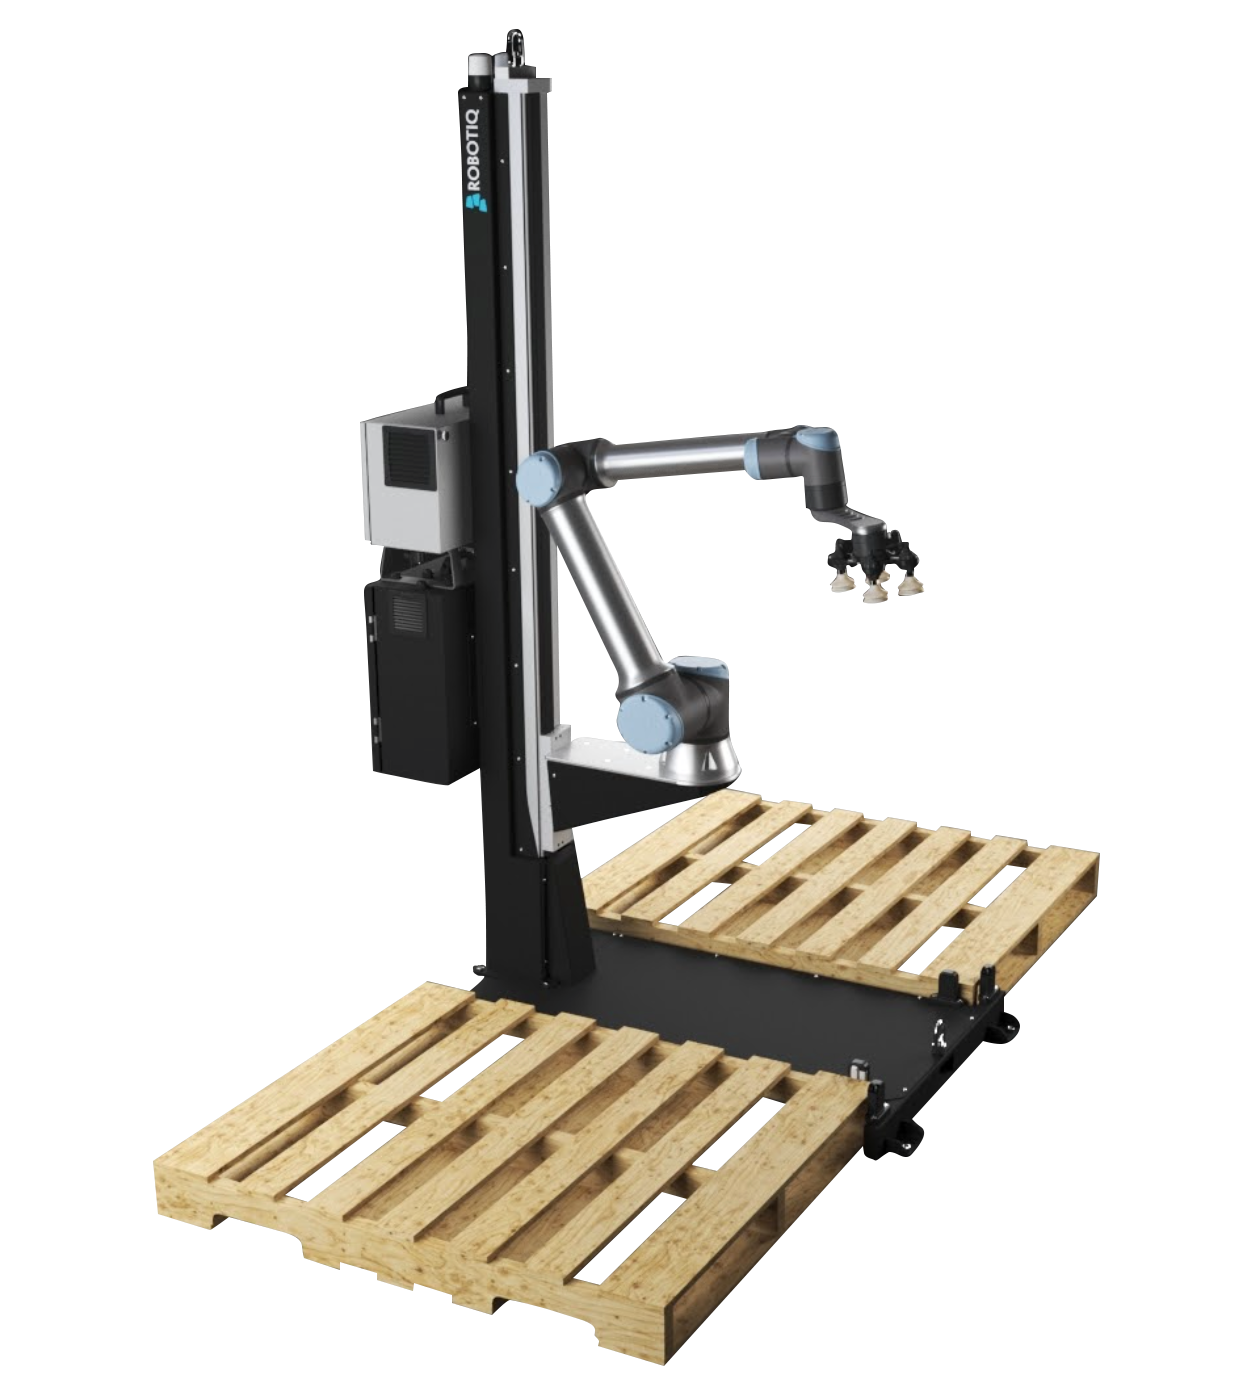 Robotiq Palletizing Solution智能码垛解决方案